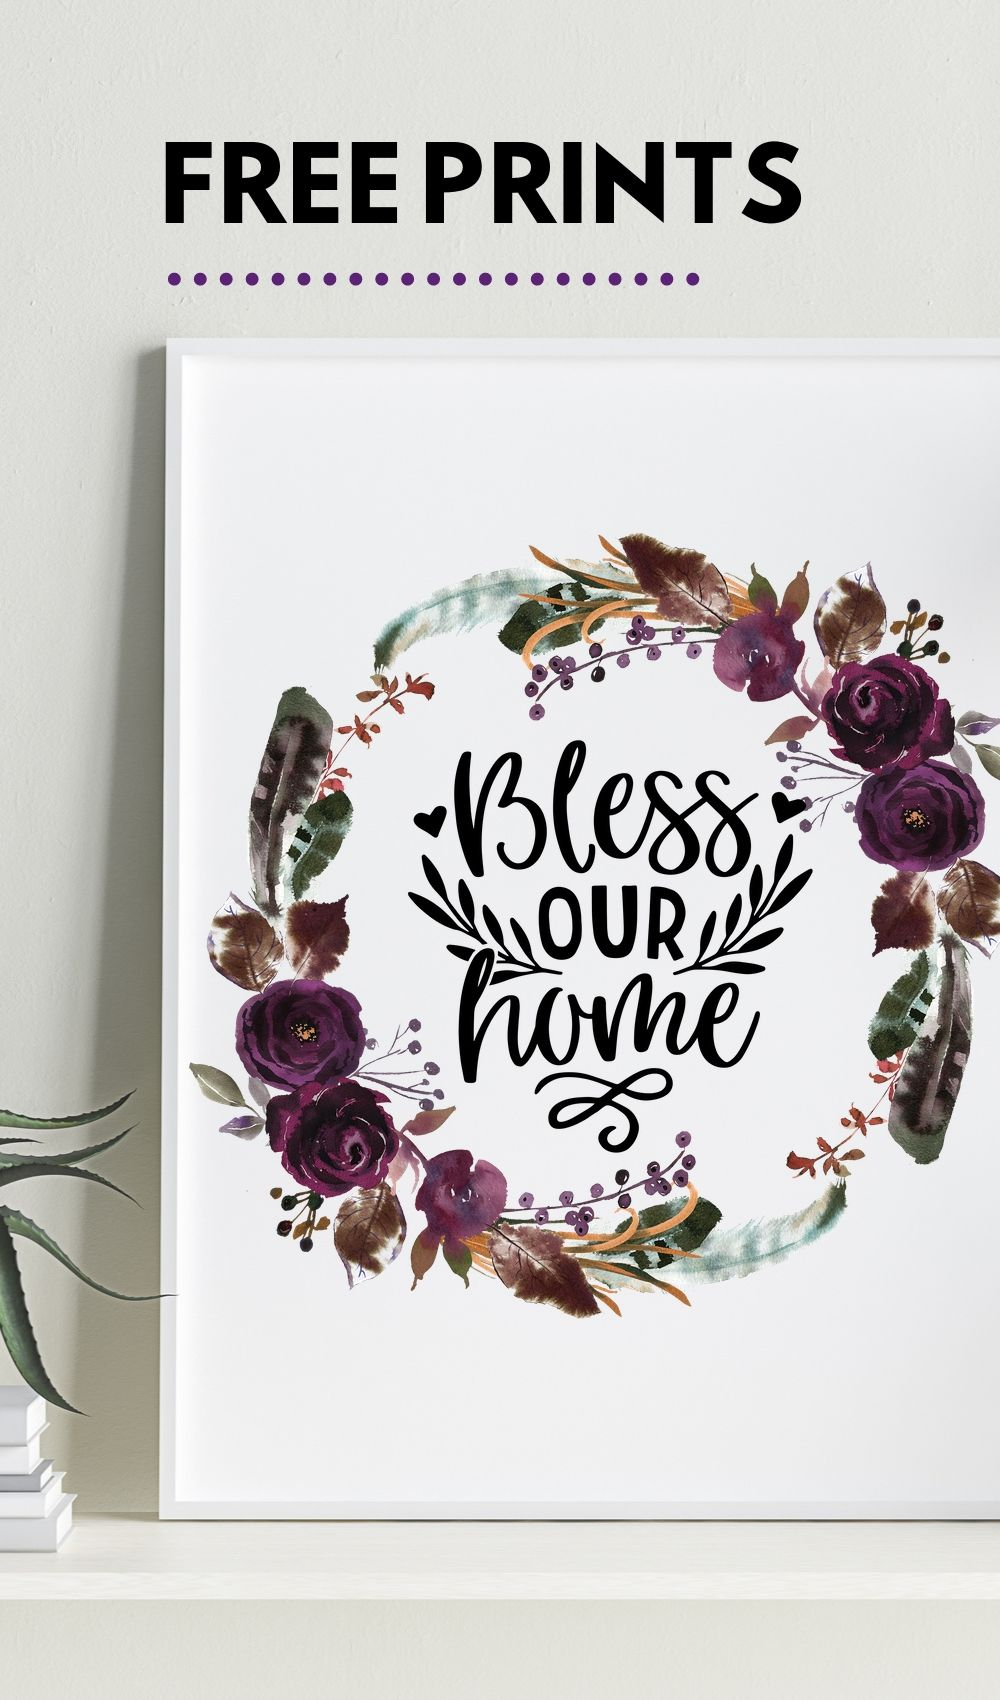 Free bless our home printable and 6 others #Fall #hellofall